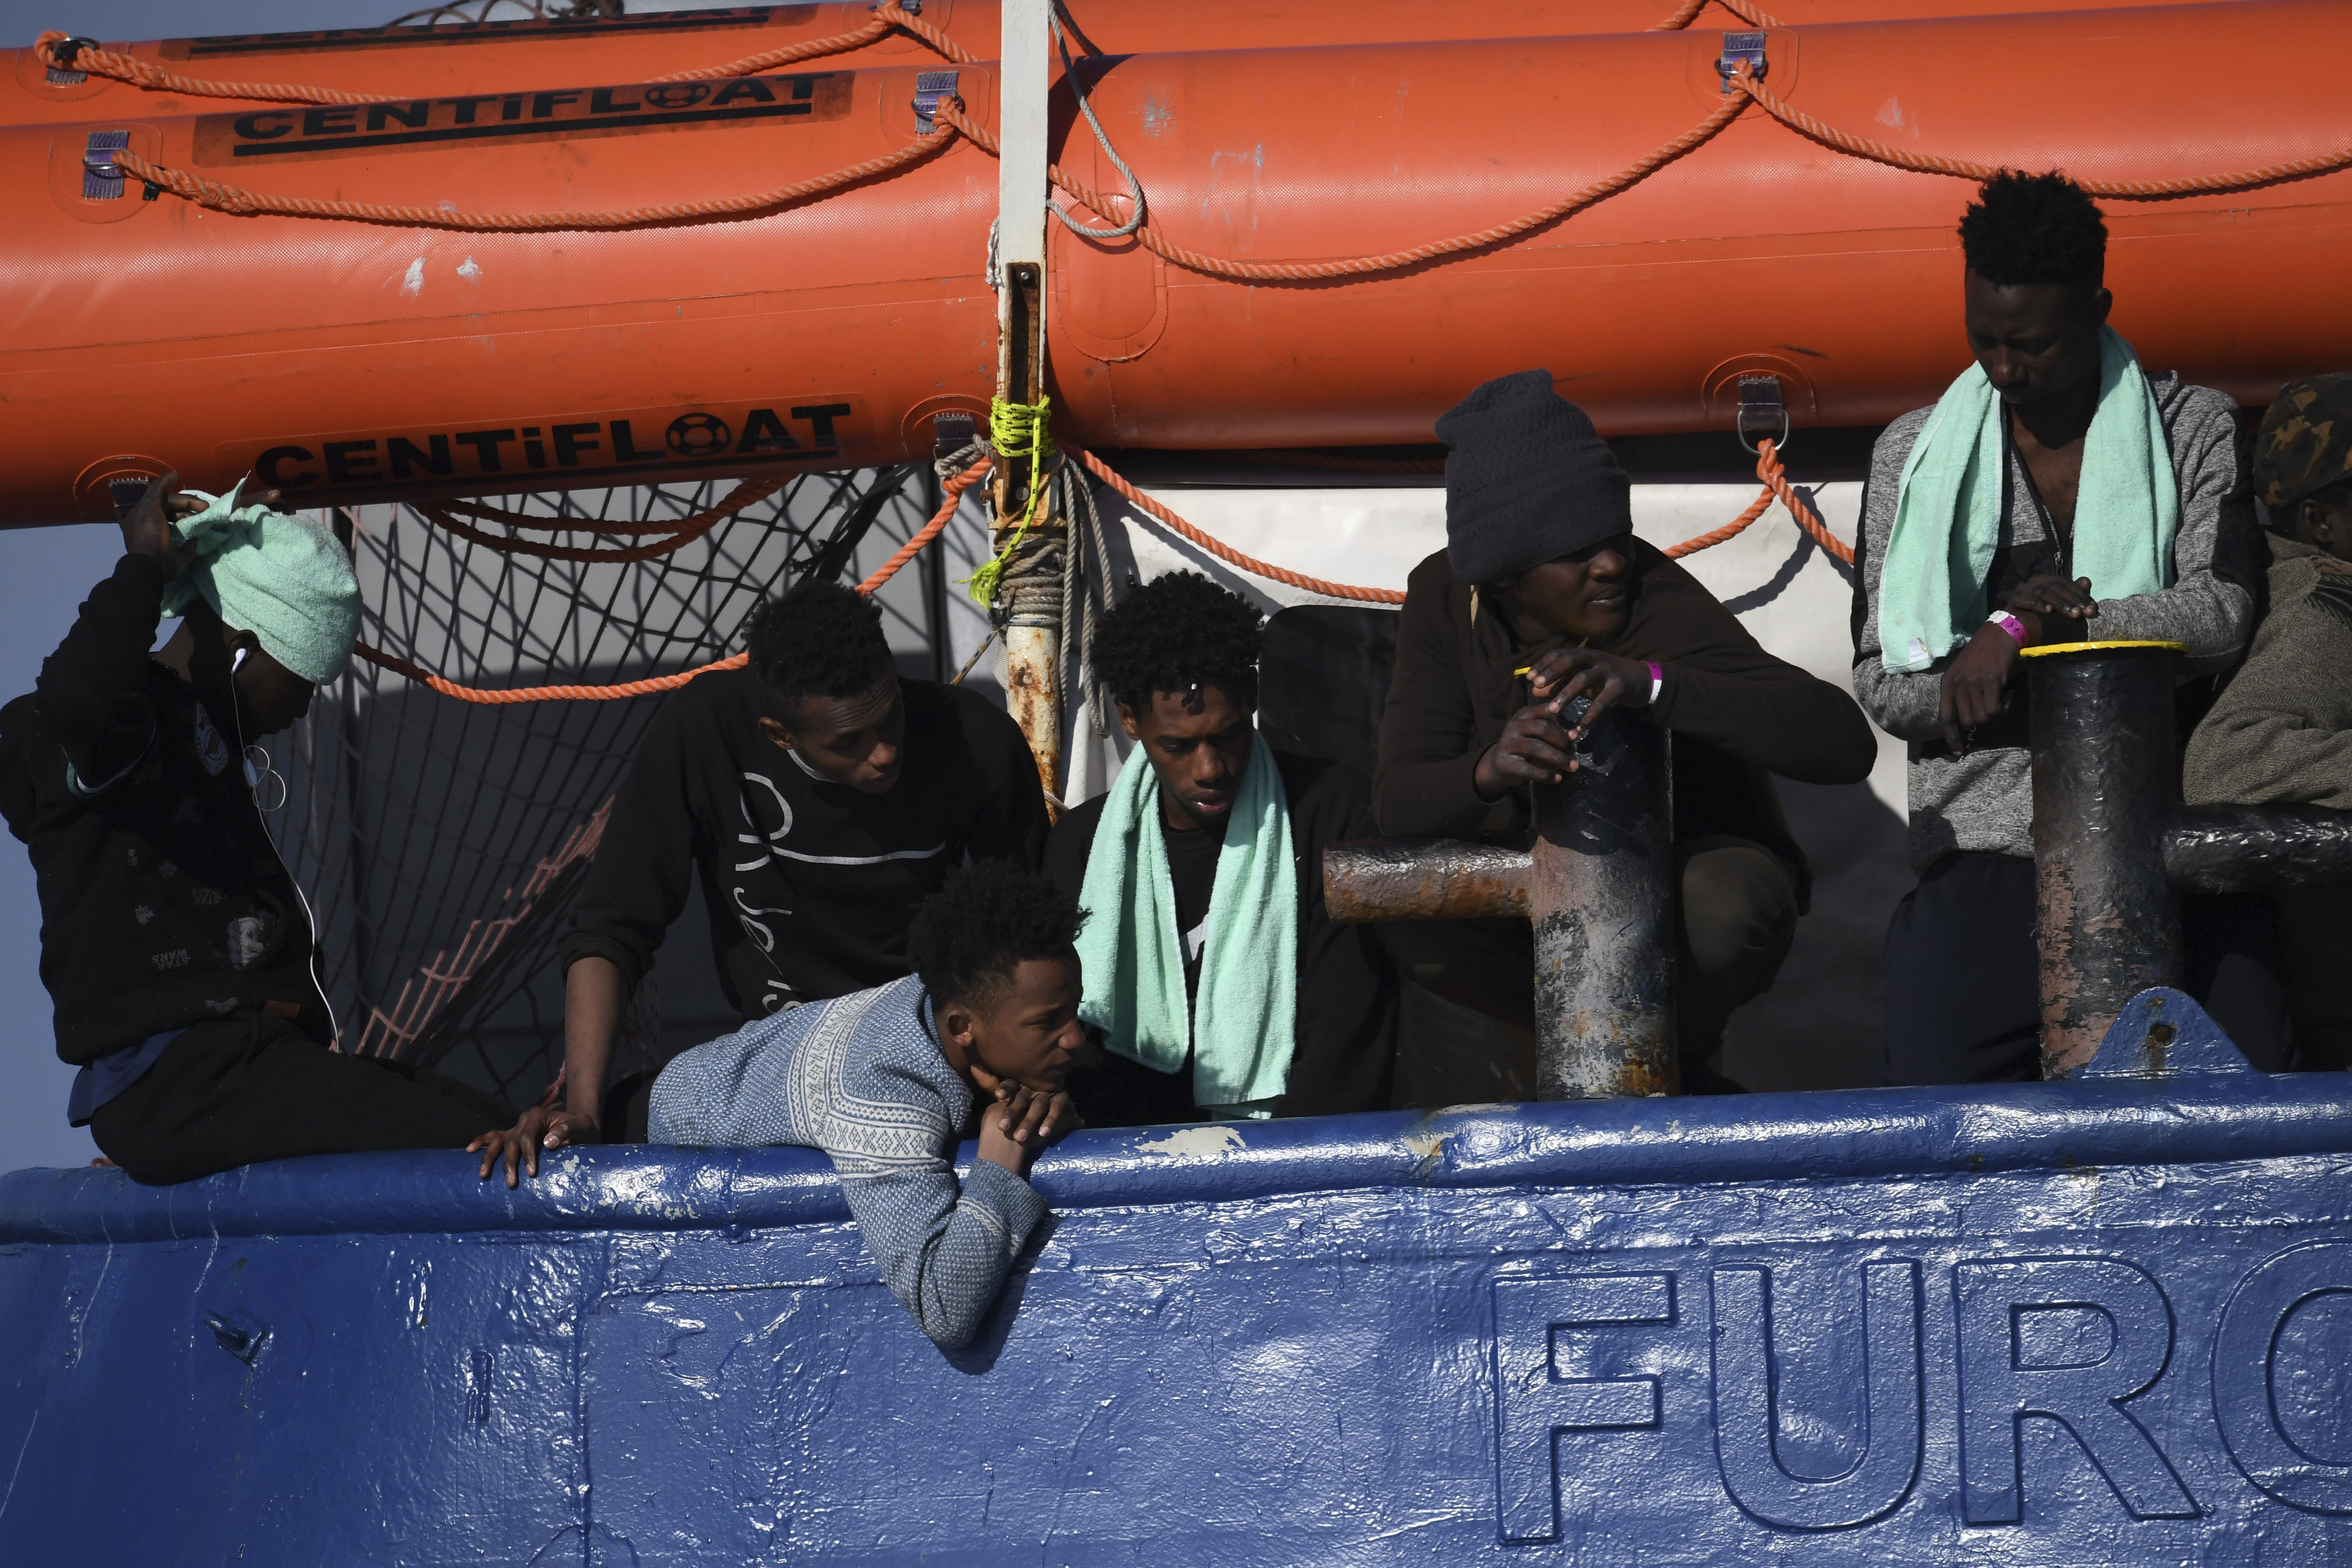 Migrants wait aboard the German humanitarian group's rescue boat Sea Watch 3, off the coast of Syracuse, Italy, Sunday, Jan. 27, 2019. The Italian coast guard is bringing socks, shoes, bread and fruit to 47 migrants who have been stranded at sea for nine days aboard a German ship. (AP Photo/Salvatore Cavalli)